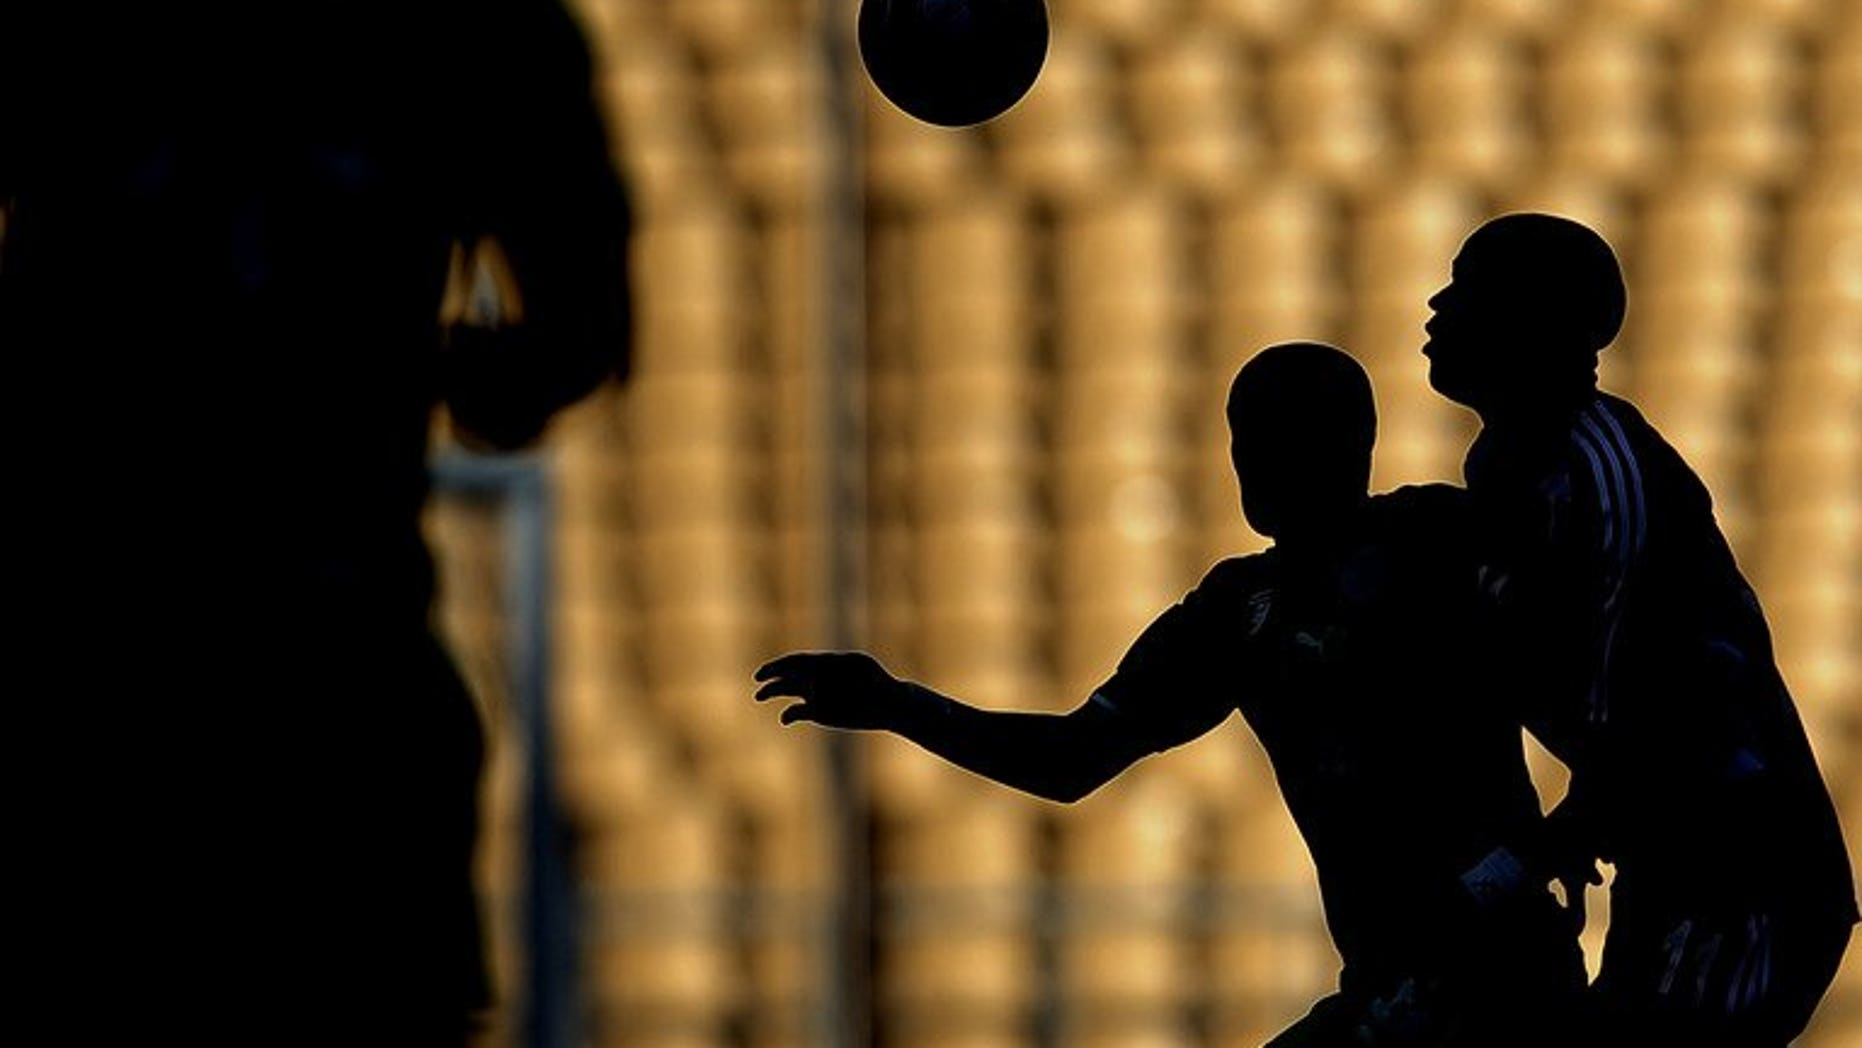 Ten people were arrested in a multi-million dollar match-fixing probe involving an Australian state soccer competition, police said Sunday, with reports that a number were British footballers.